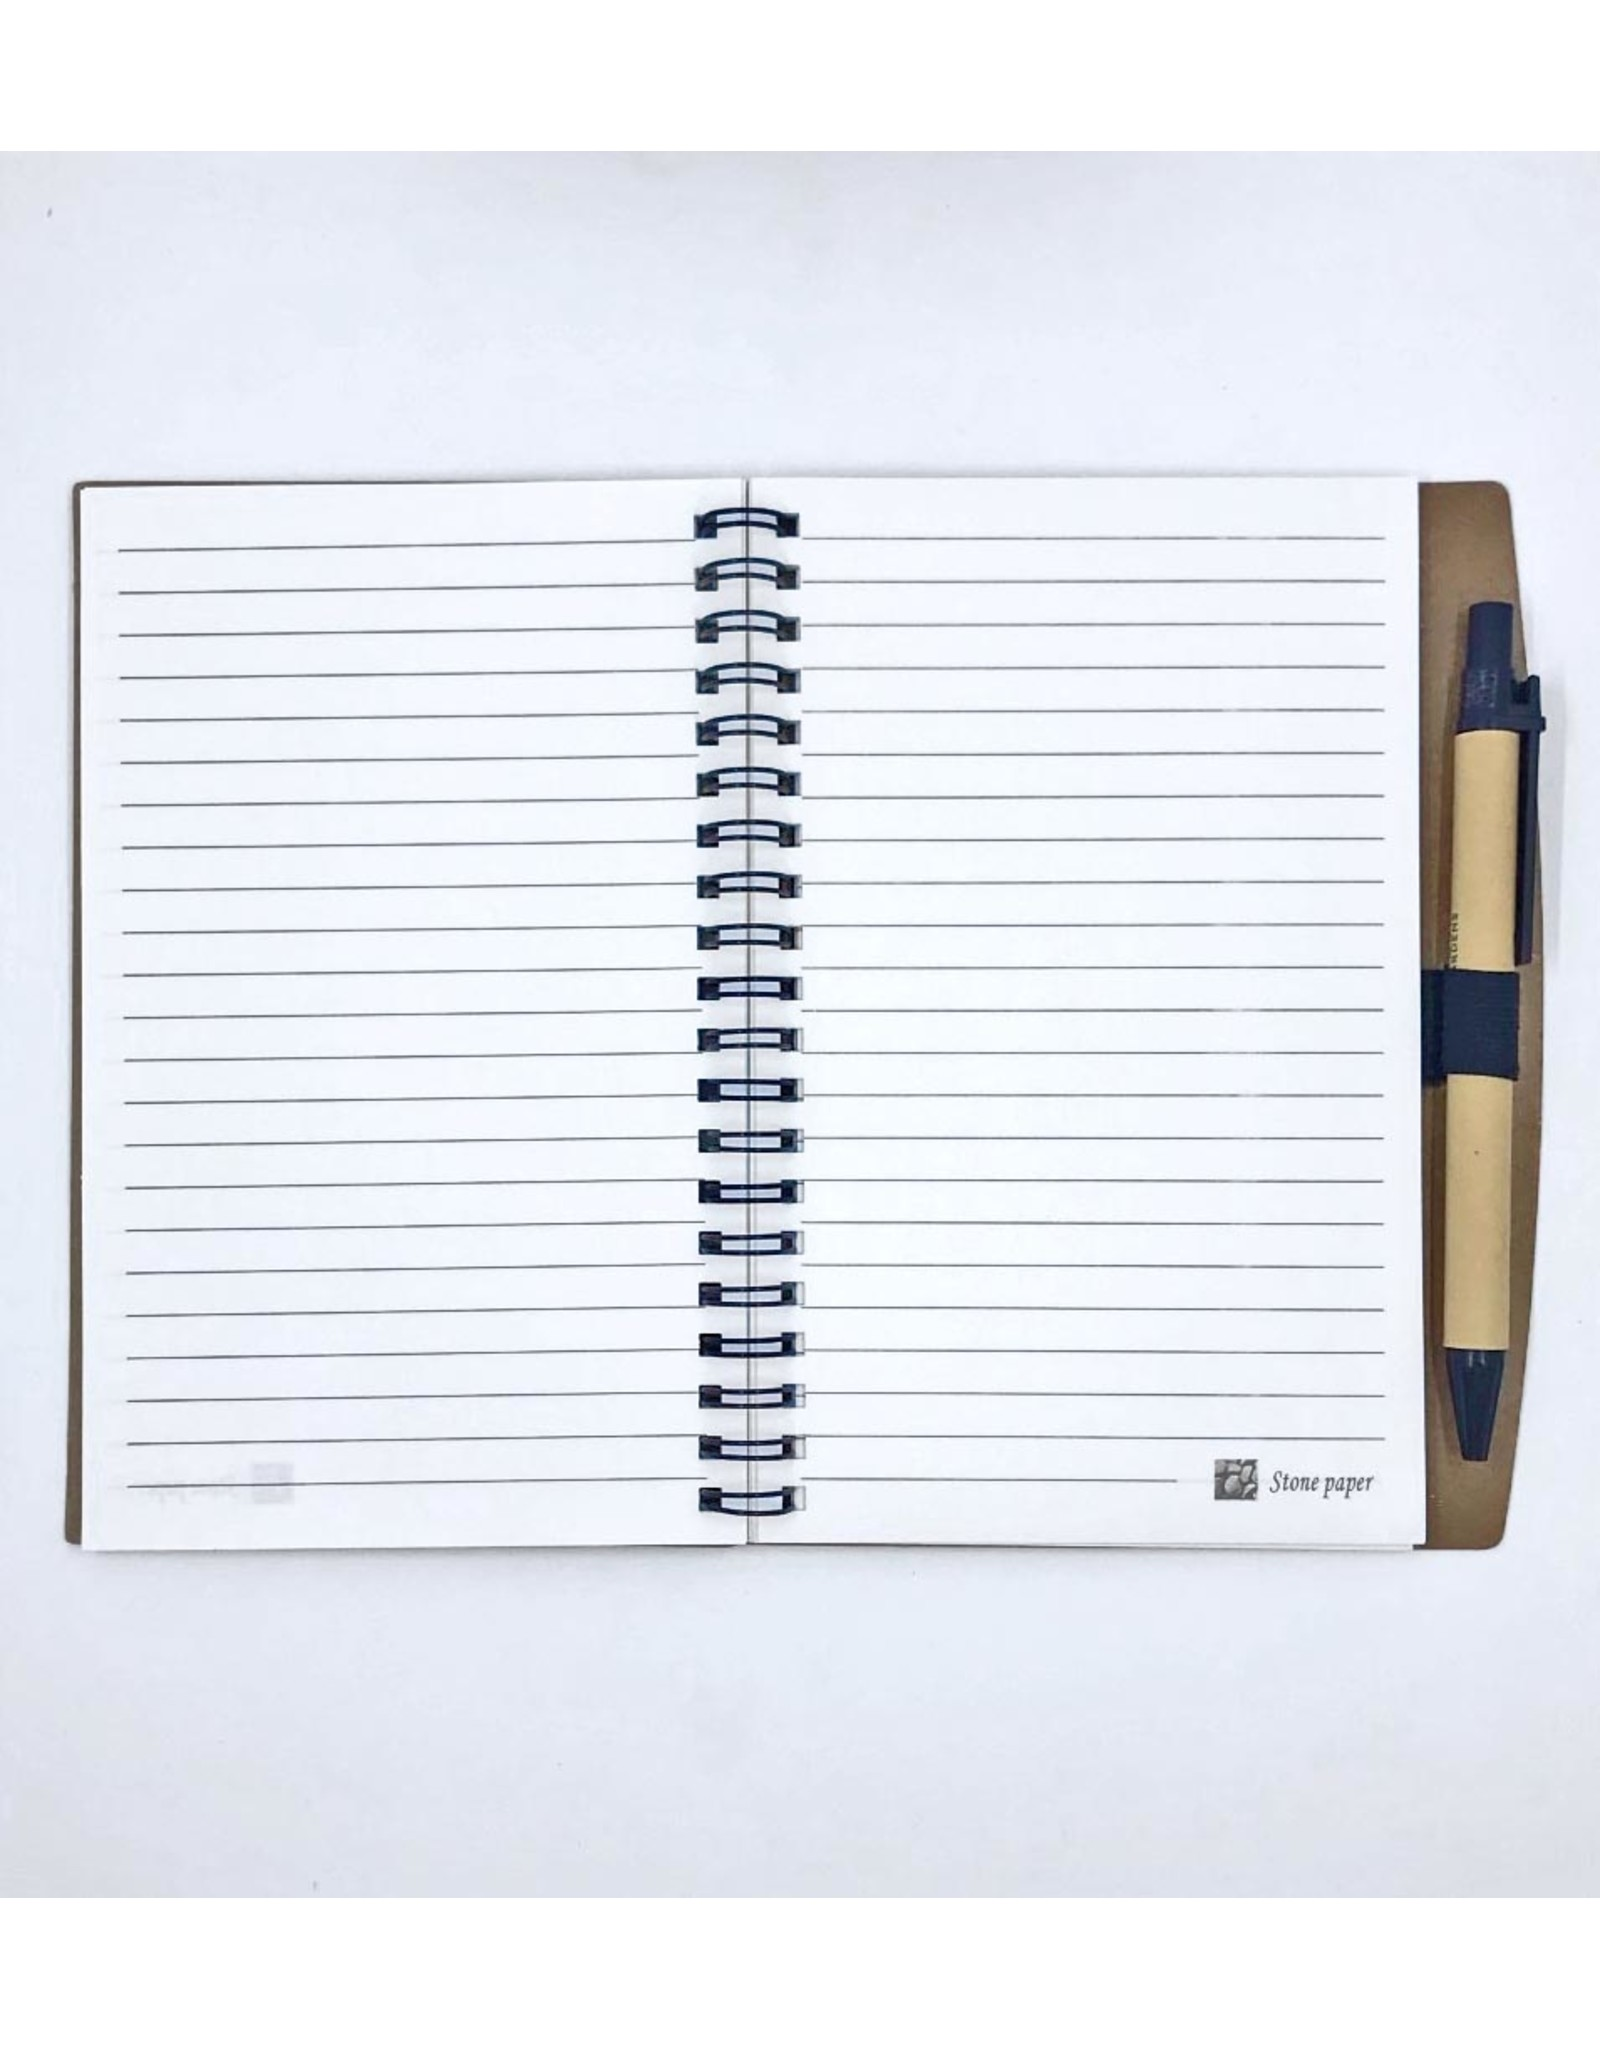 Cheekwood Stone Paper Notebook with Pen